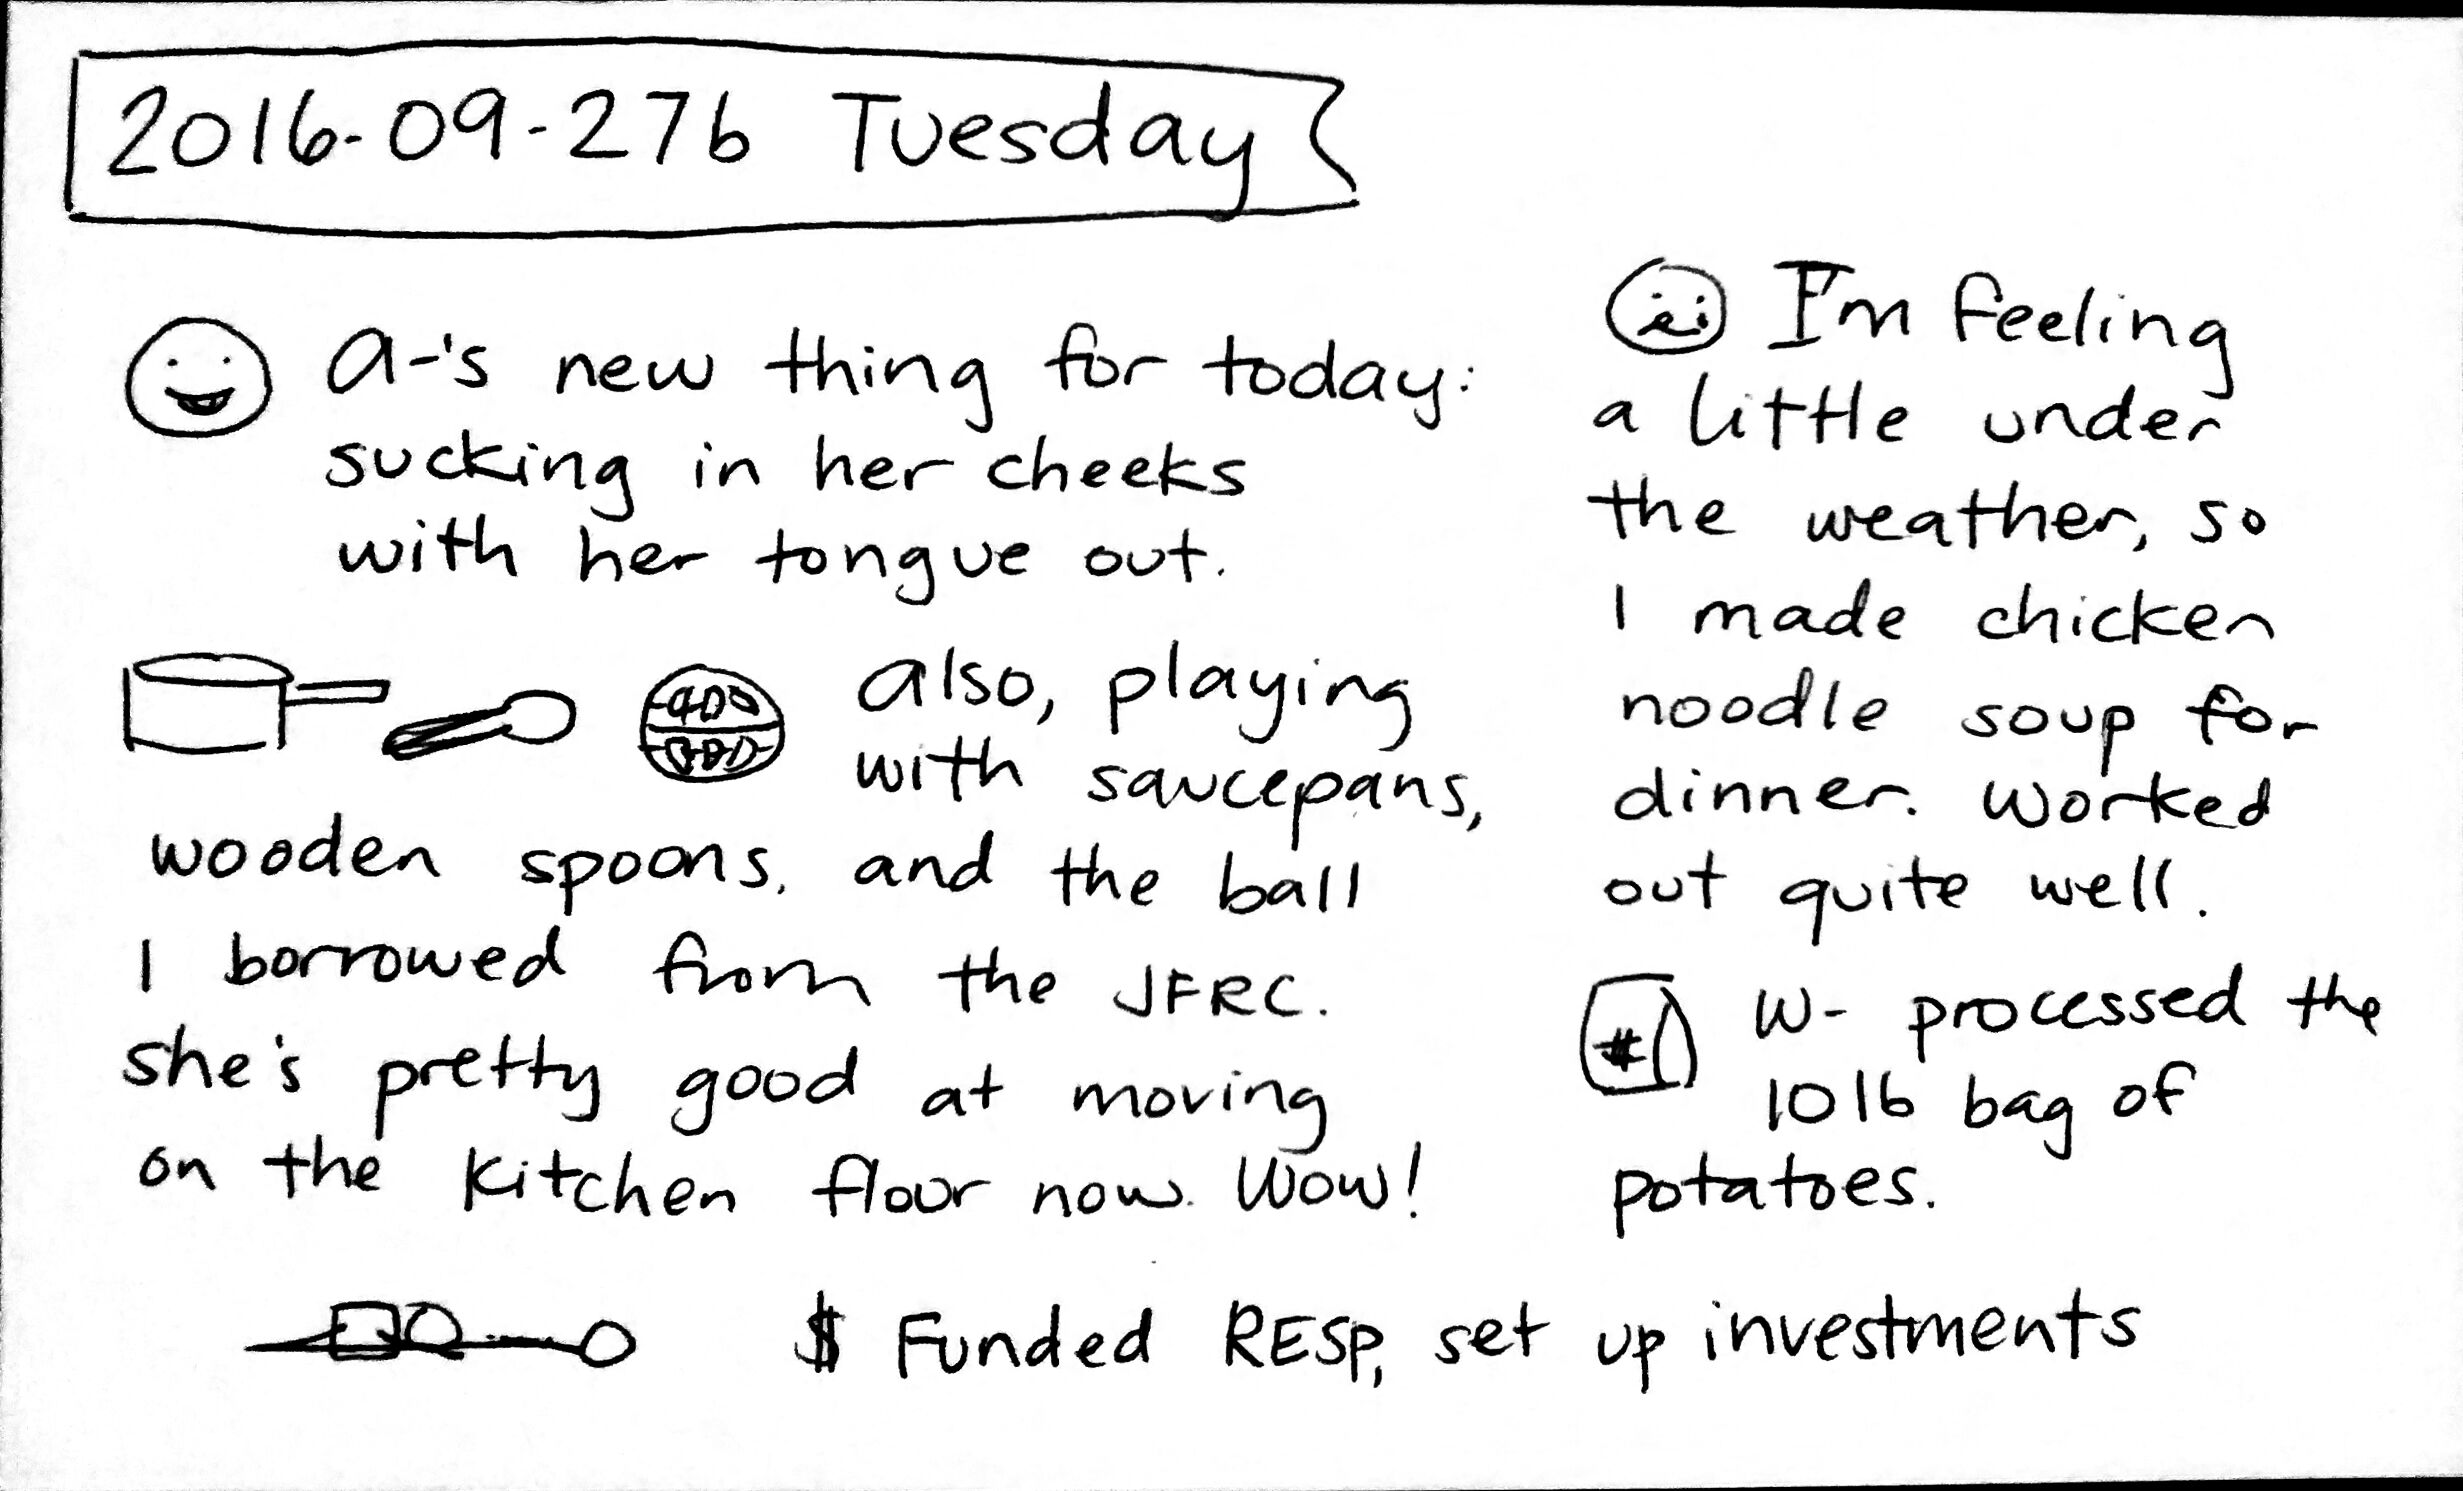 2016-09-27b Tuesday #daily #journal.jpg